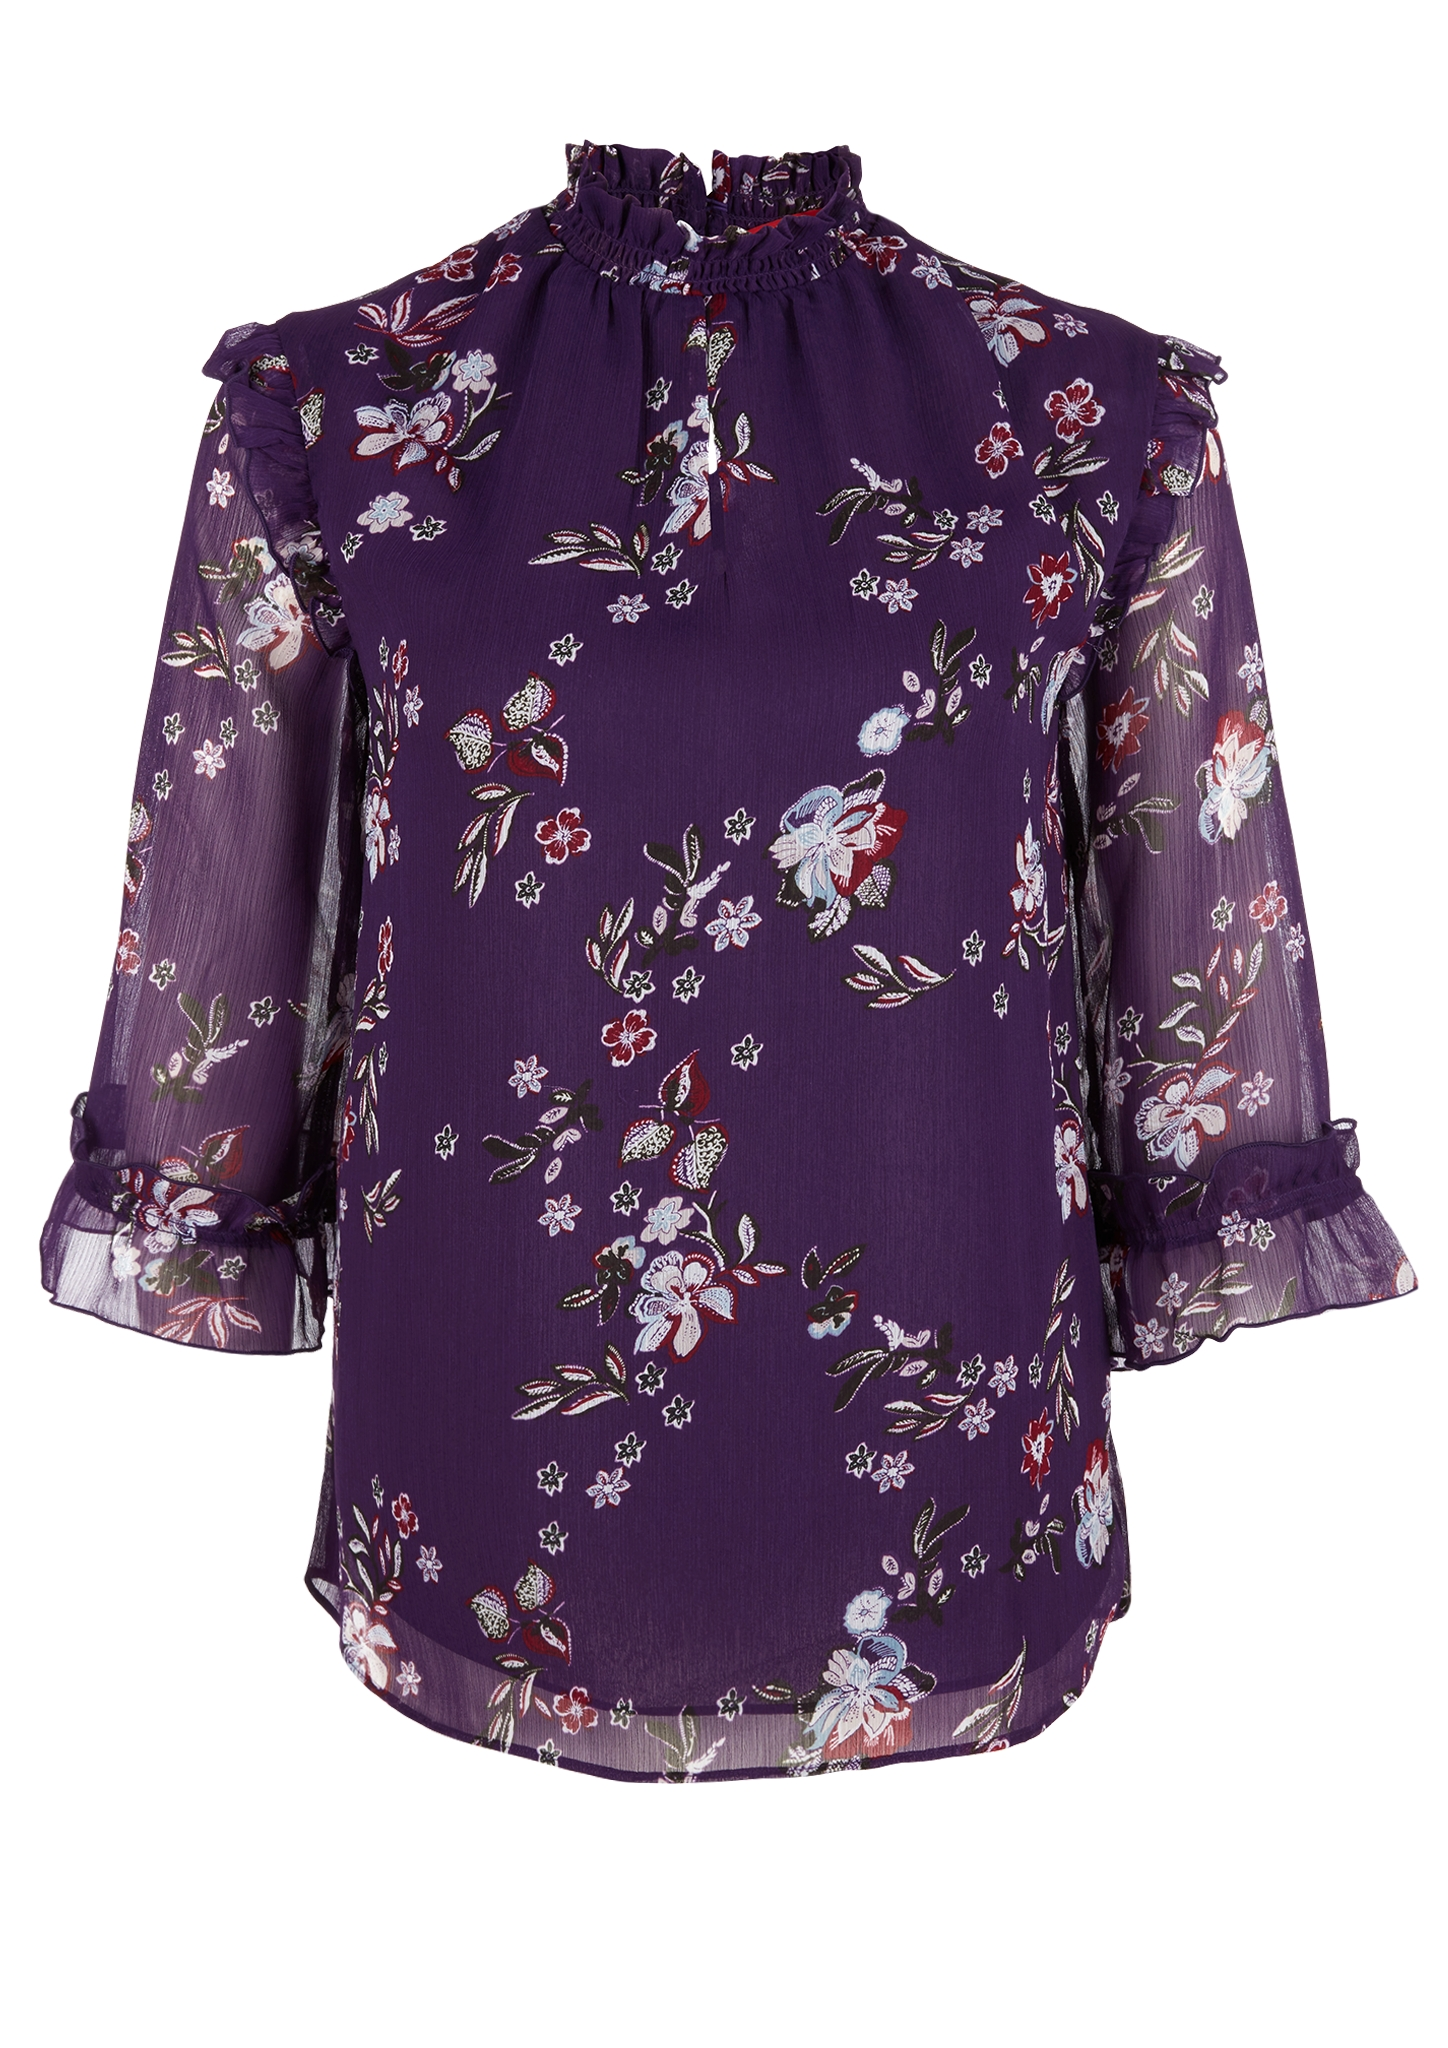 Chiffonbluse | Bekleidung > Blusen > Chiffonblusen | Lila | Obermaterial 100% polyester| futter 100% polyester | s.Oliver